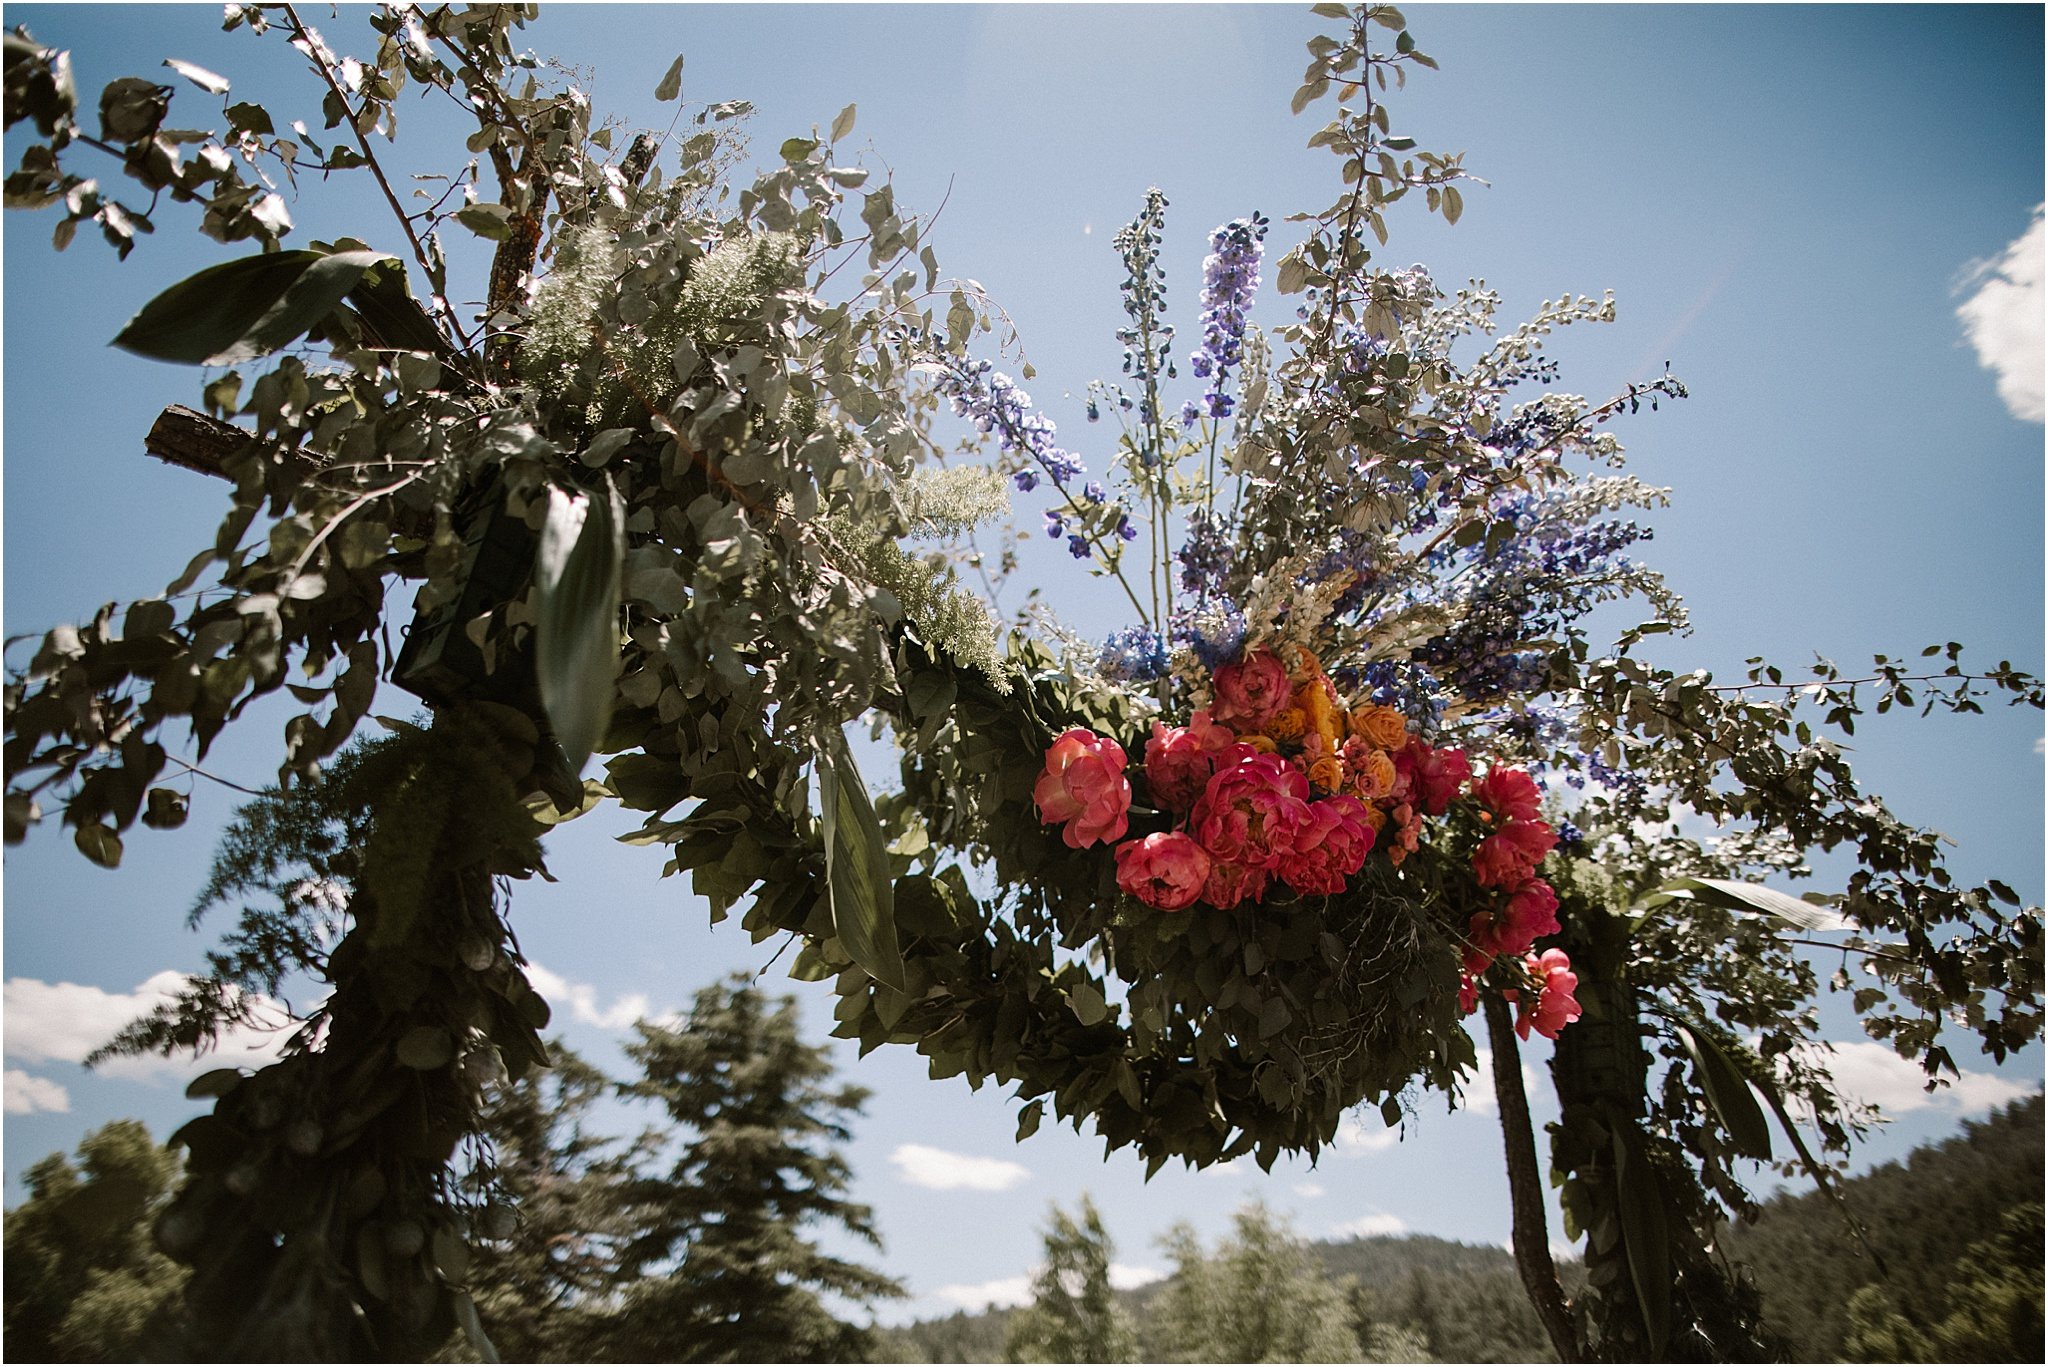 AMELIA_JASON_SANTA FE_ WEDDING_BLUE ROSE PHOTOGRAPHY20